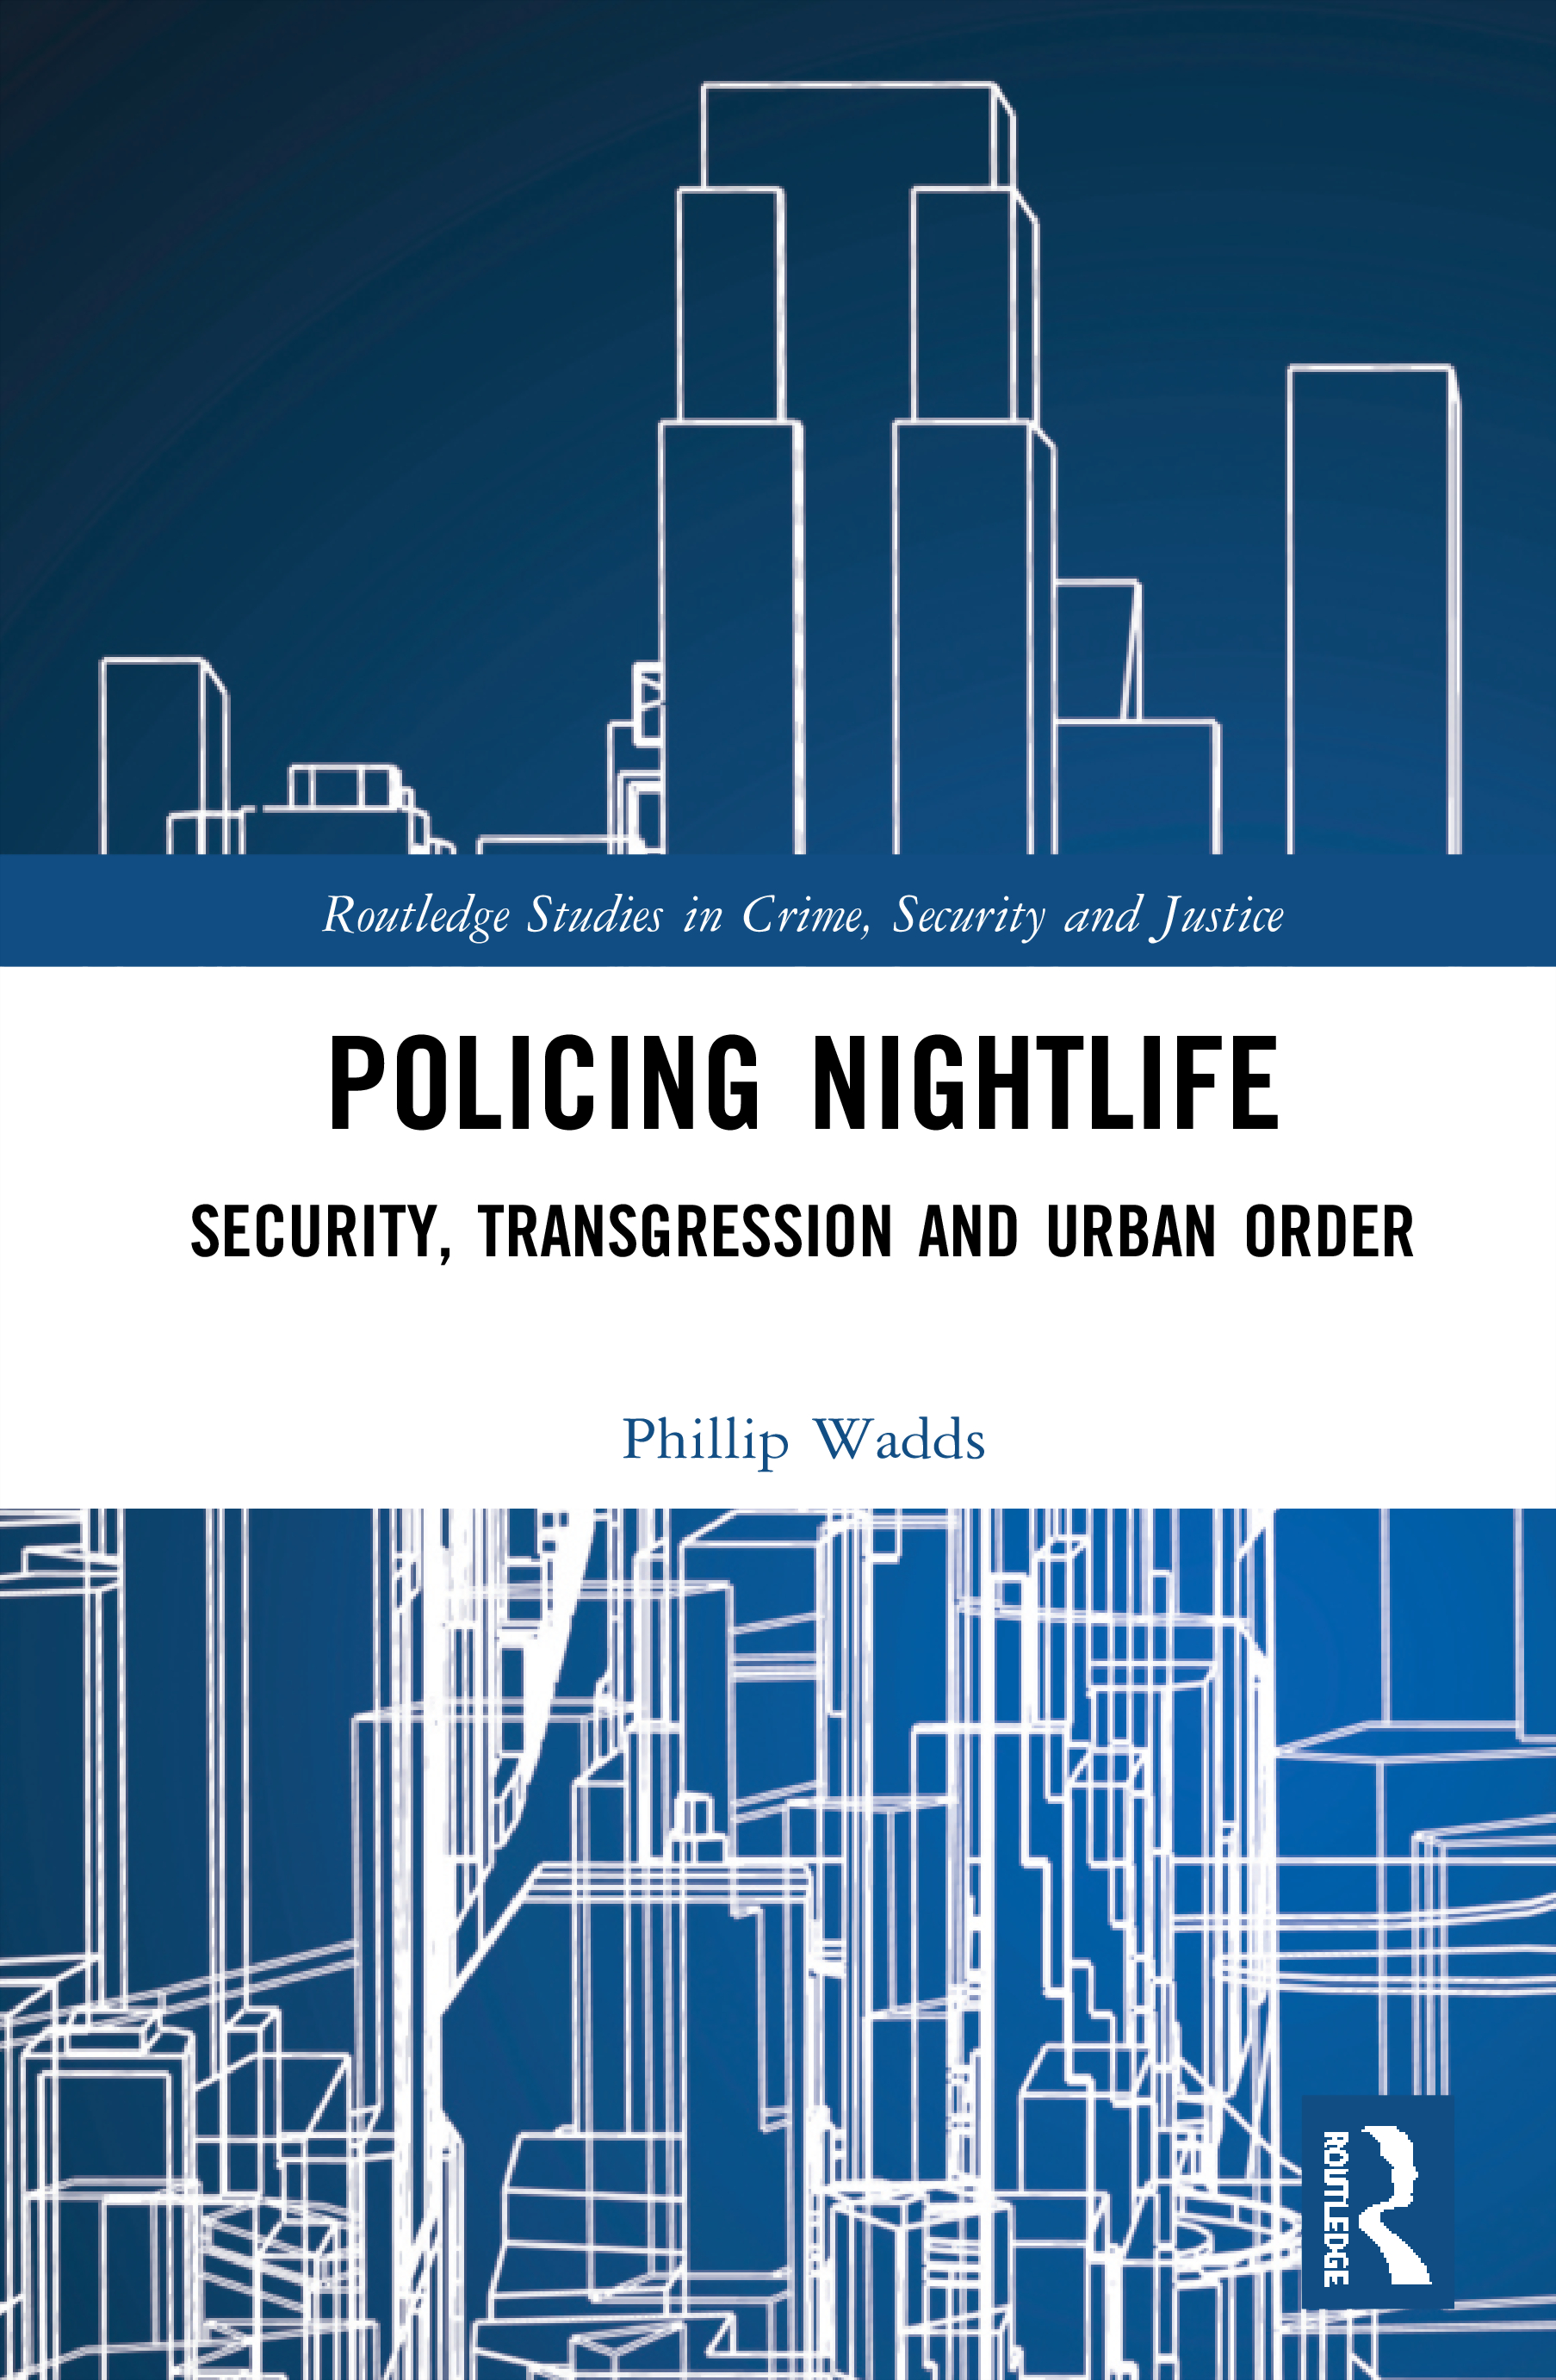 Policing Nightlife: Security, Transgression and Urban Order book cover